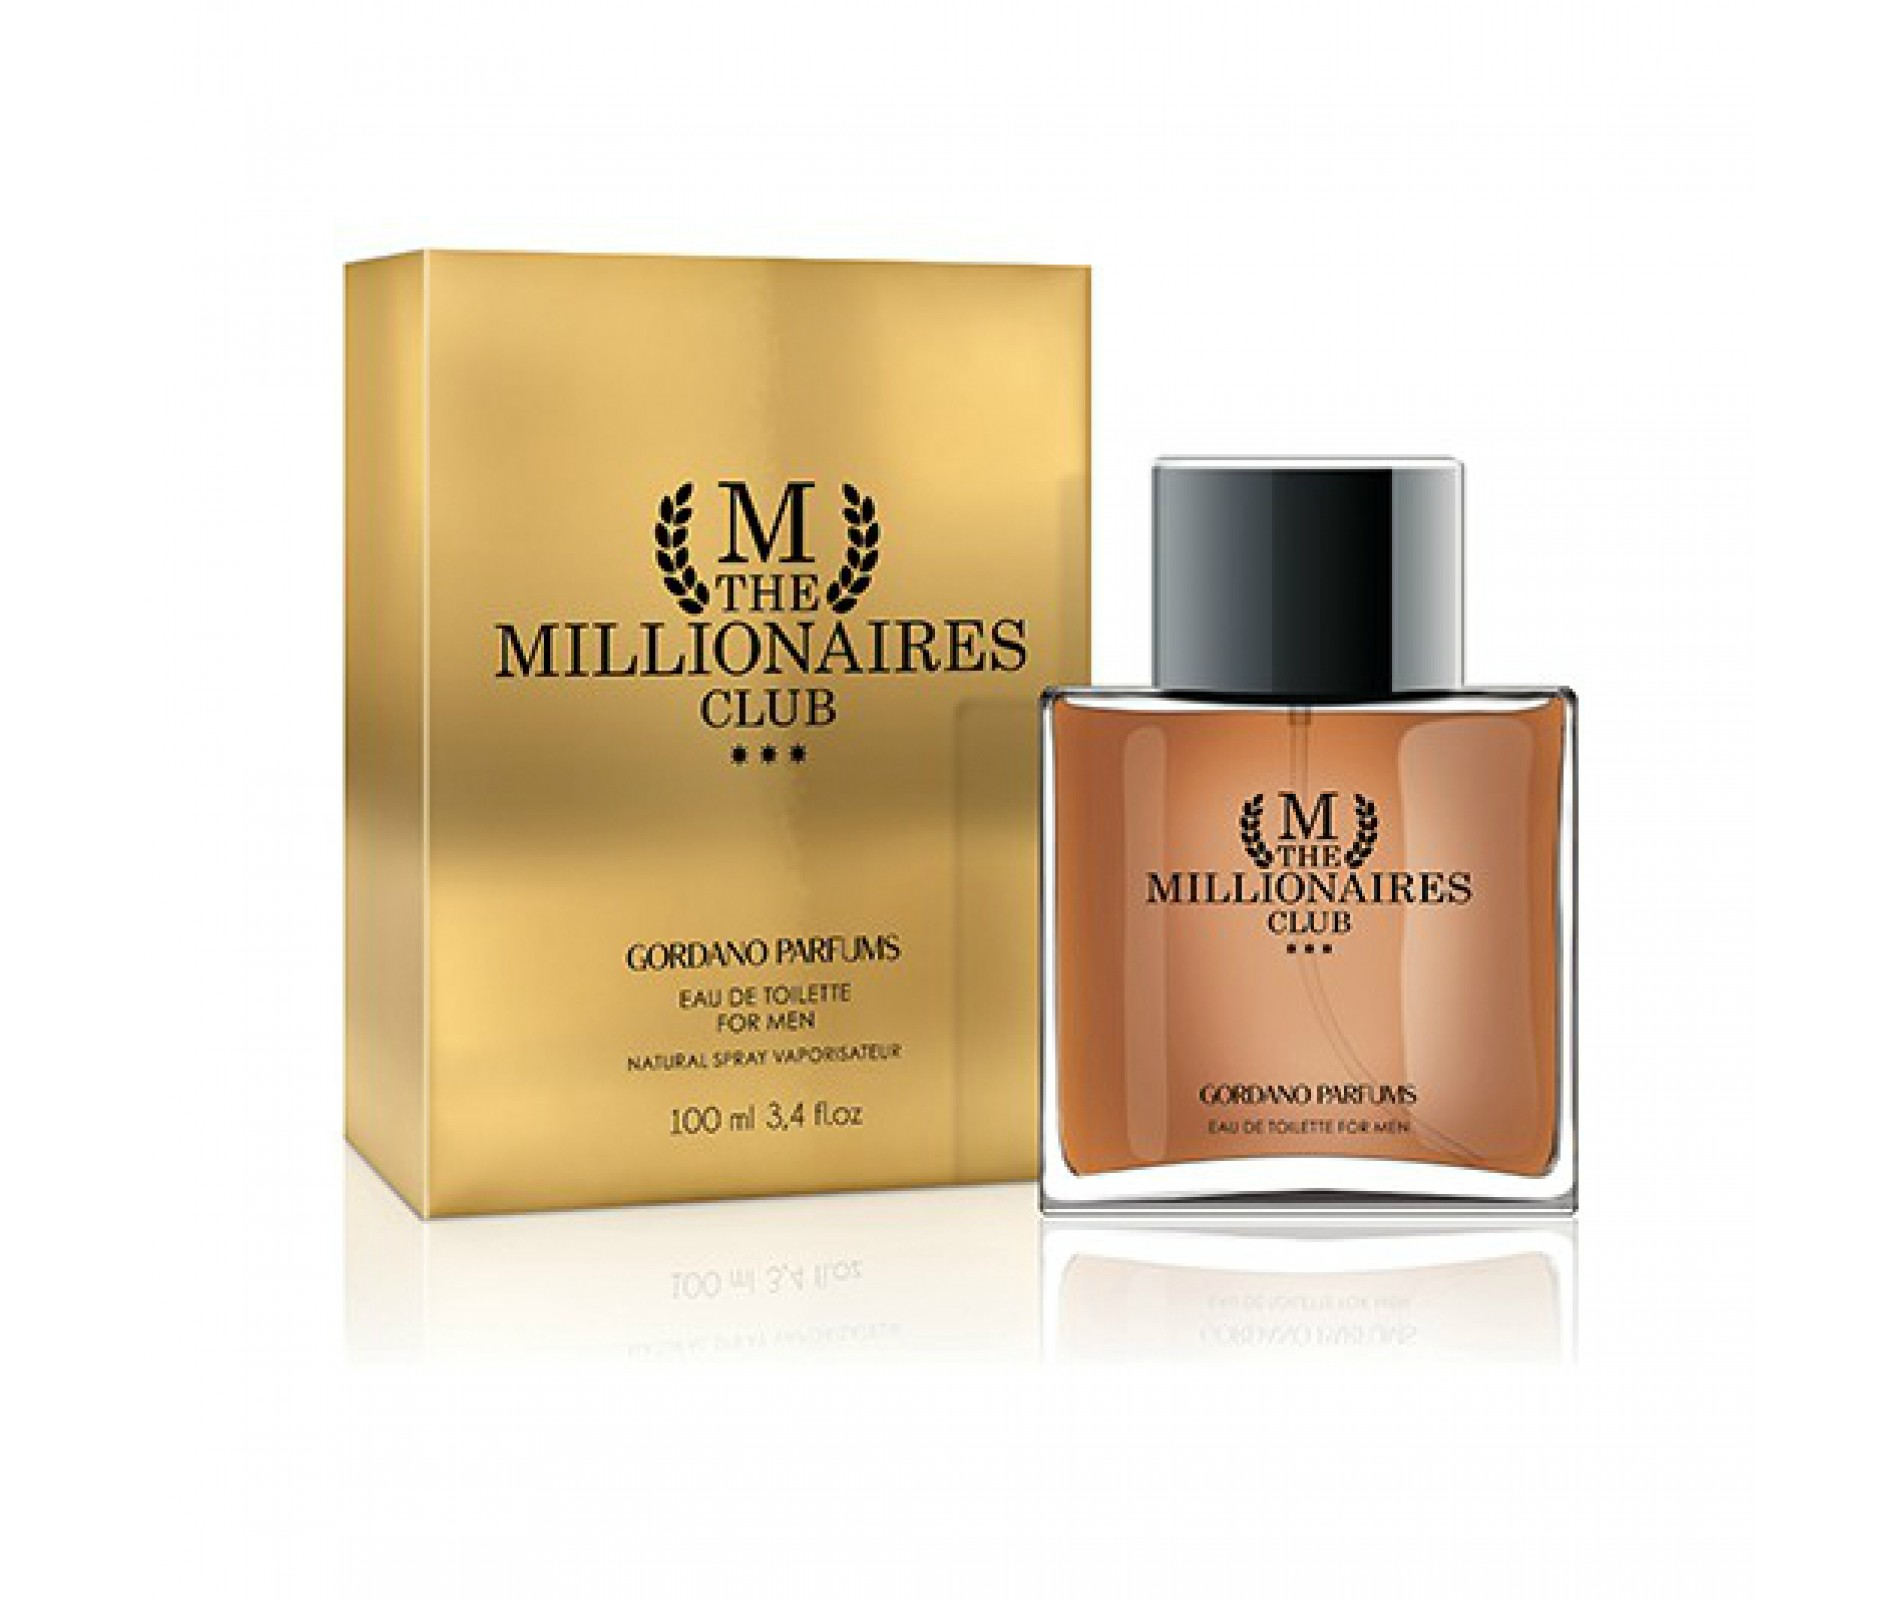 GORDANO PARFUMS M The Millionaires Club